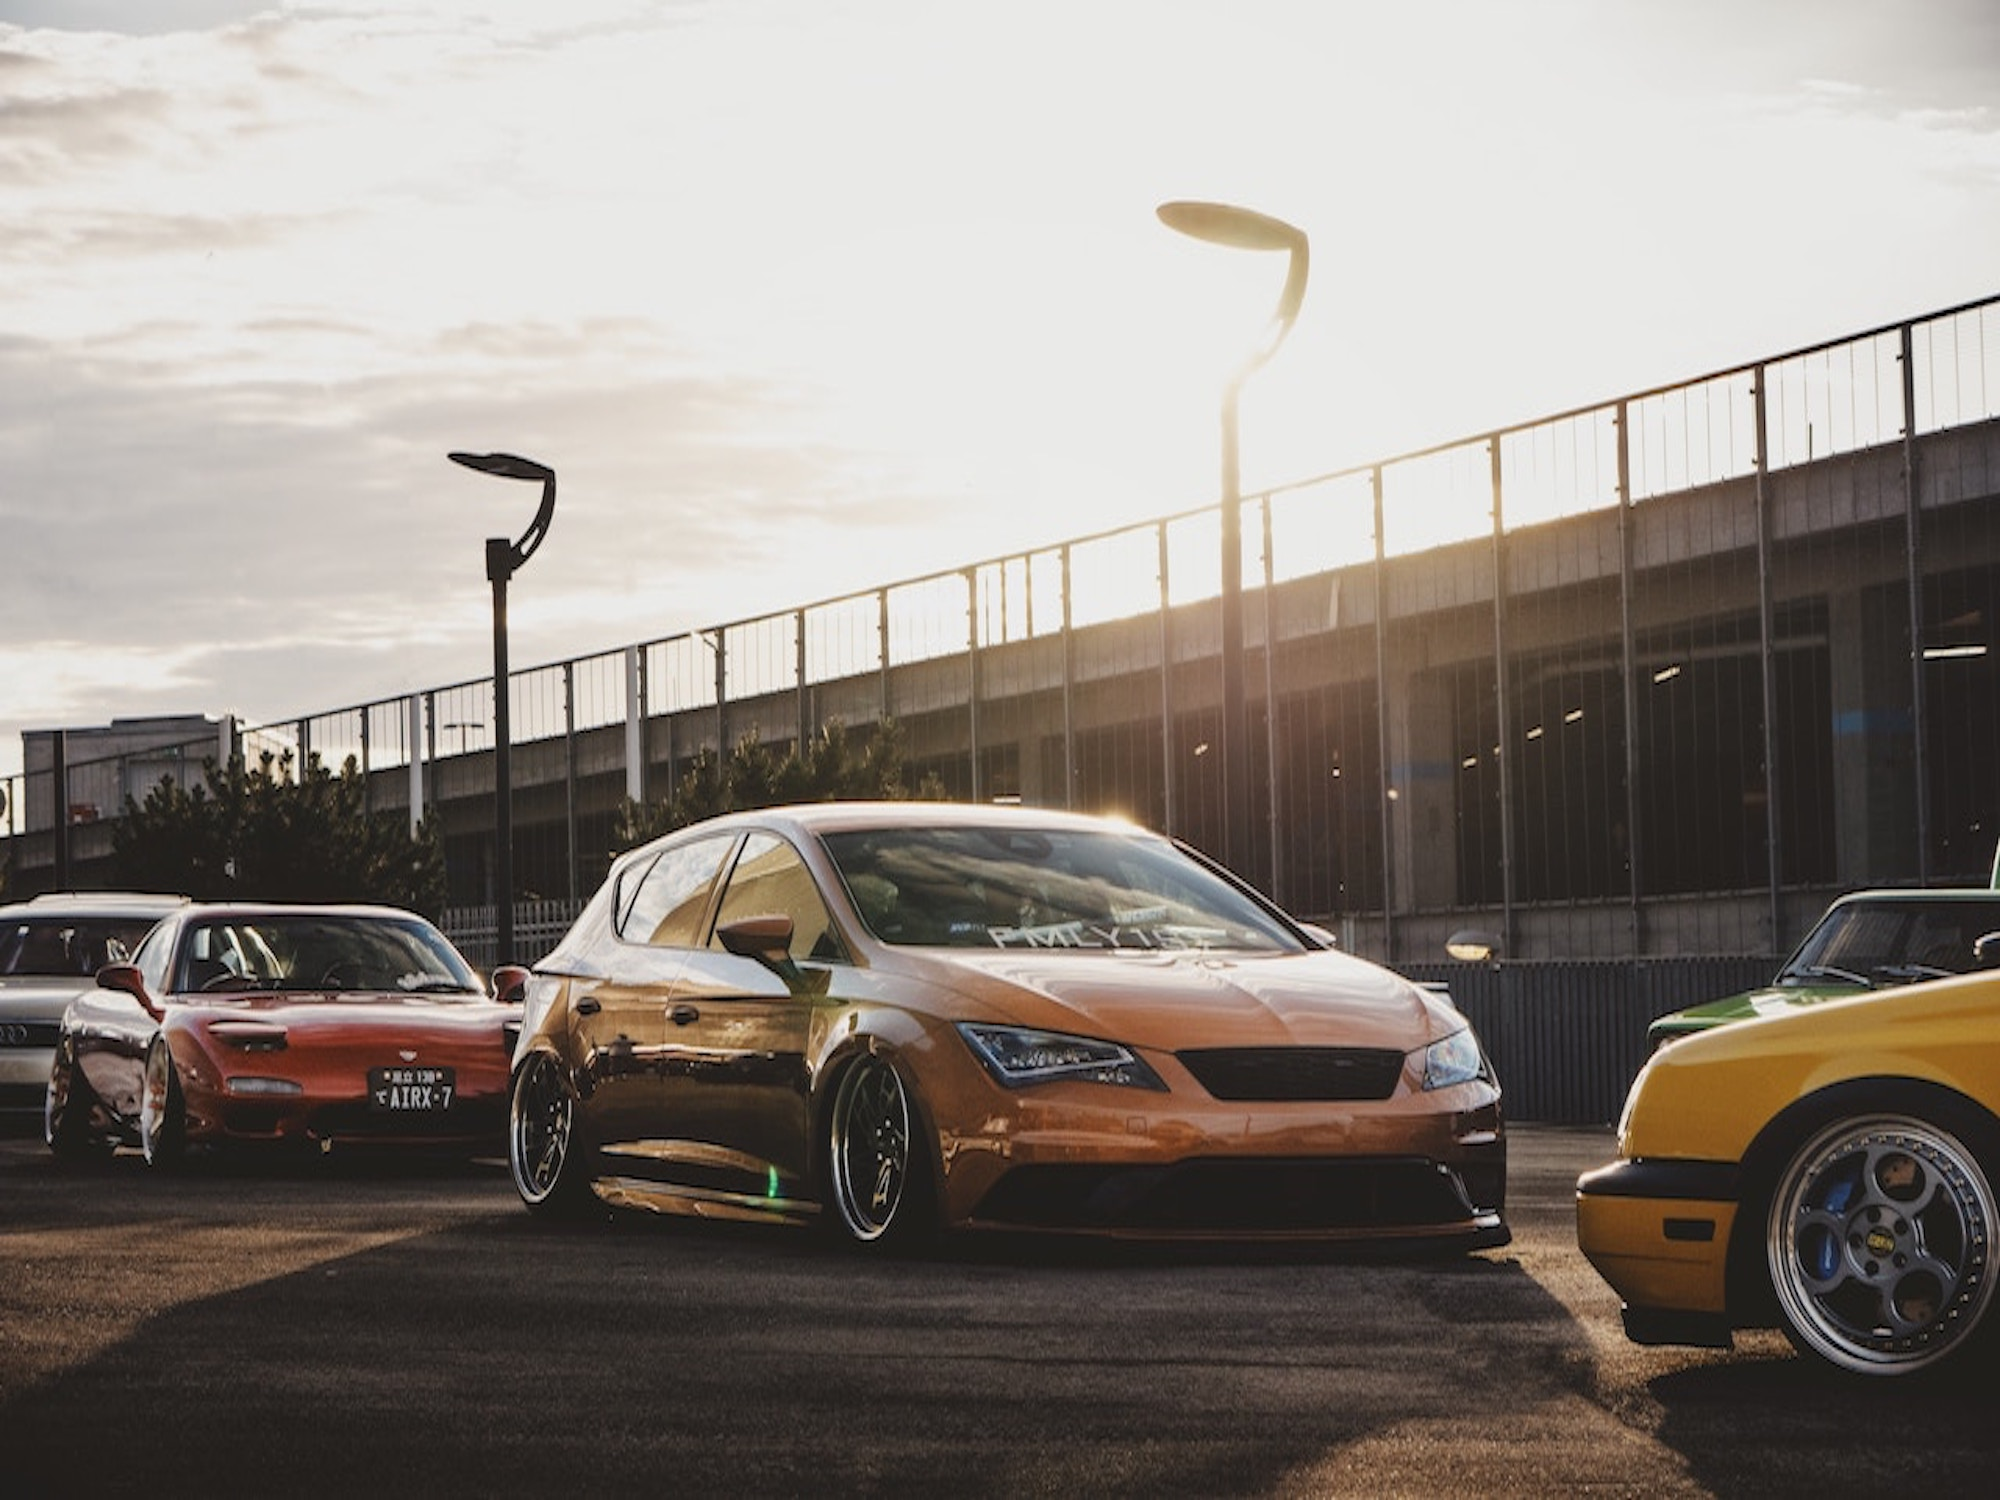 to lease or not to lease a used car